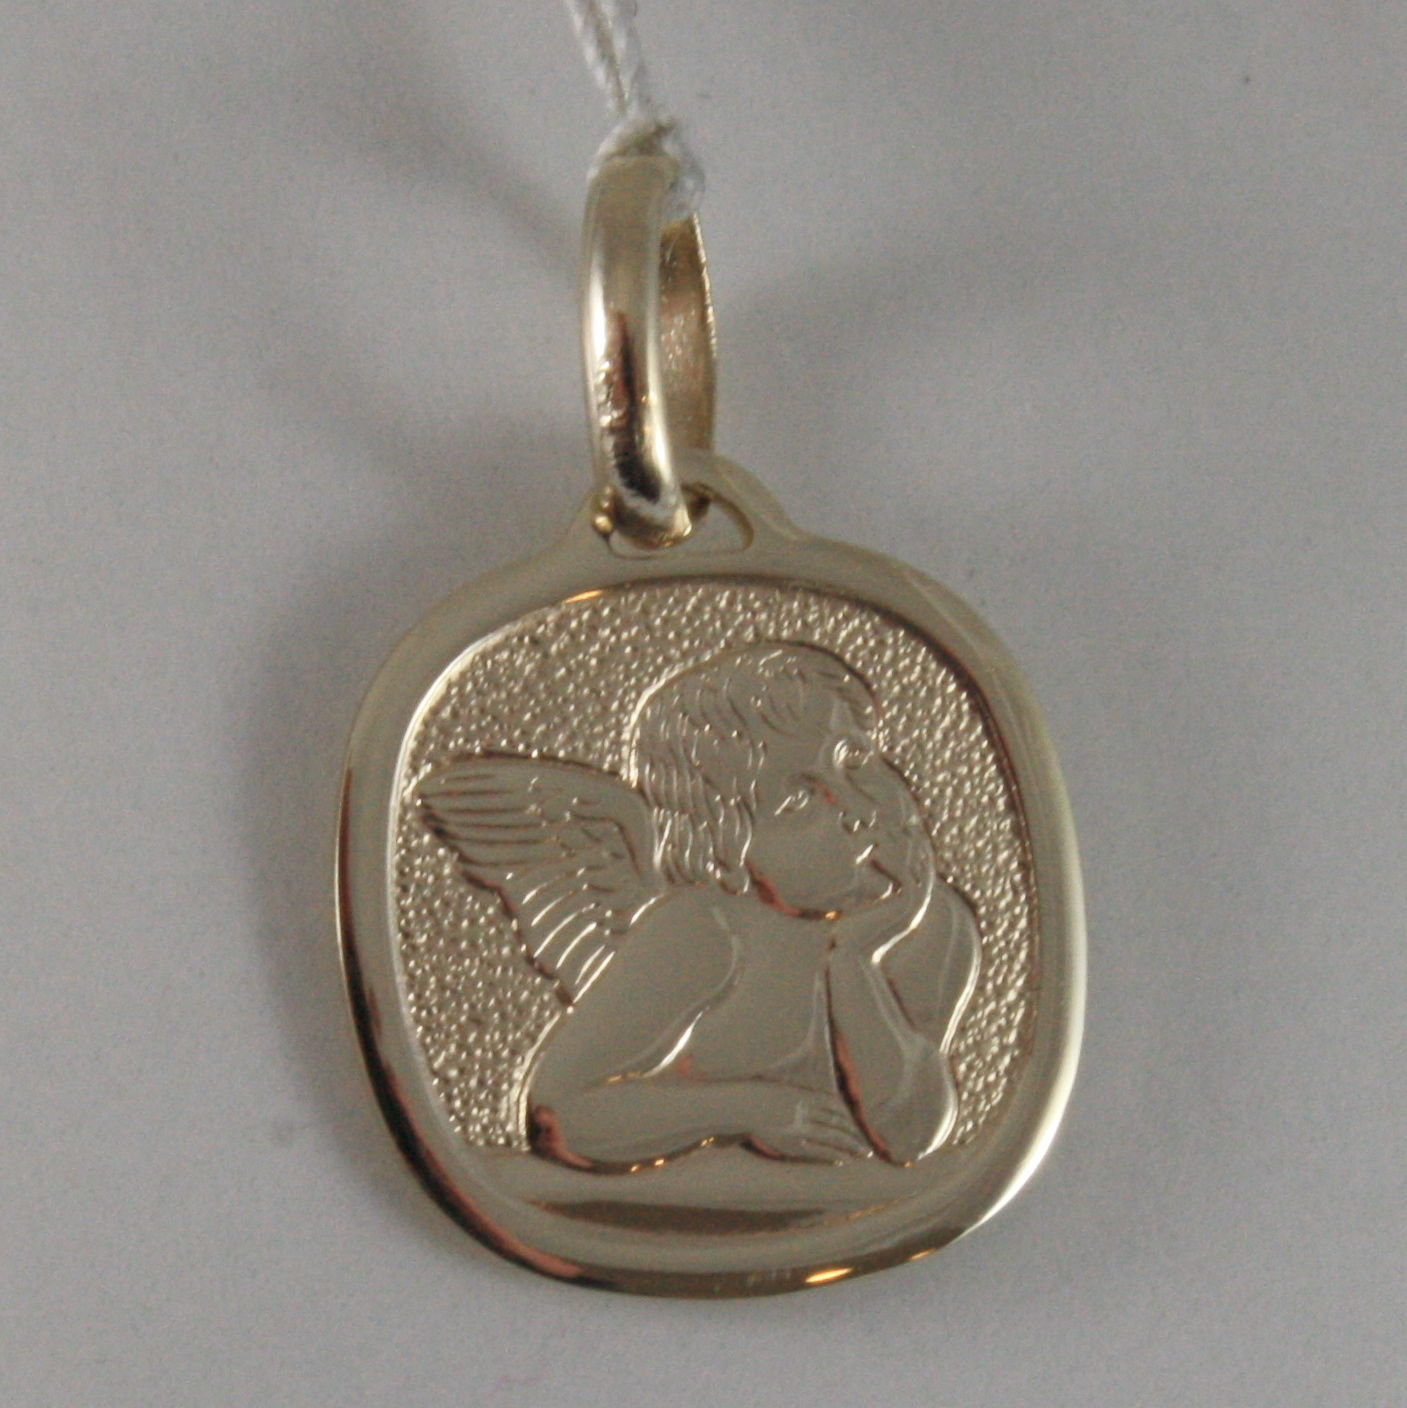 SOLID 9K YELLOW GOLD ANGEL PENDANT, SQUARE ANGEL MEDAL, MADE IN ITALY, 9KT